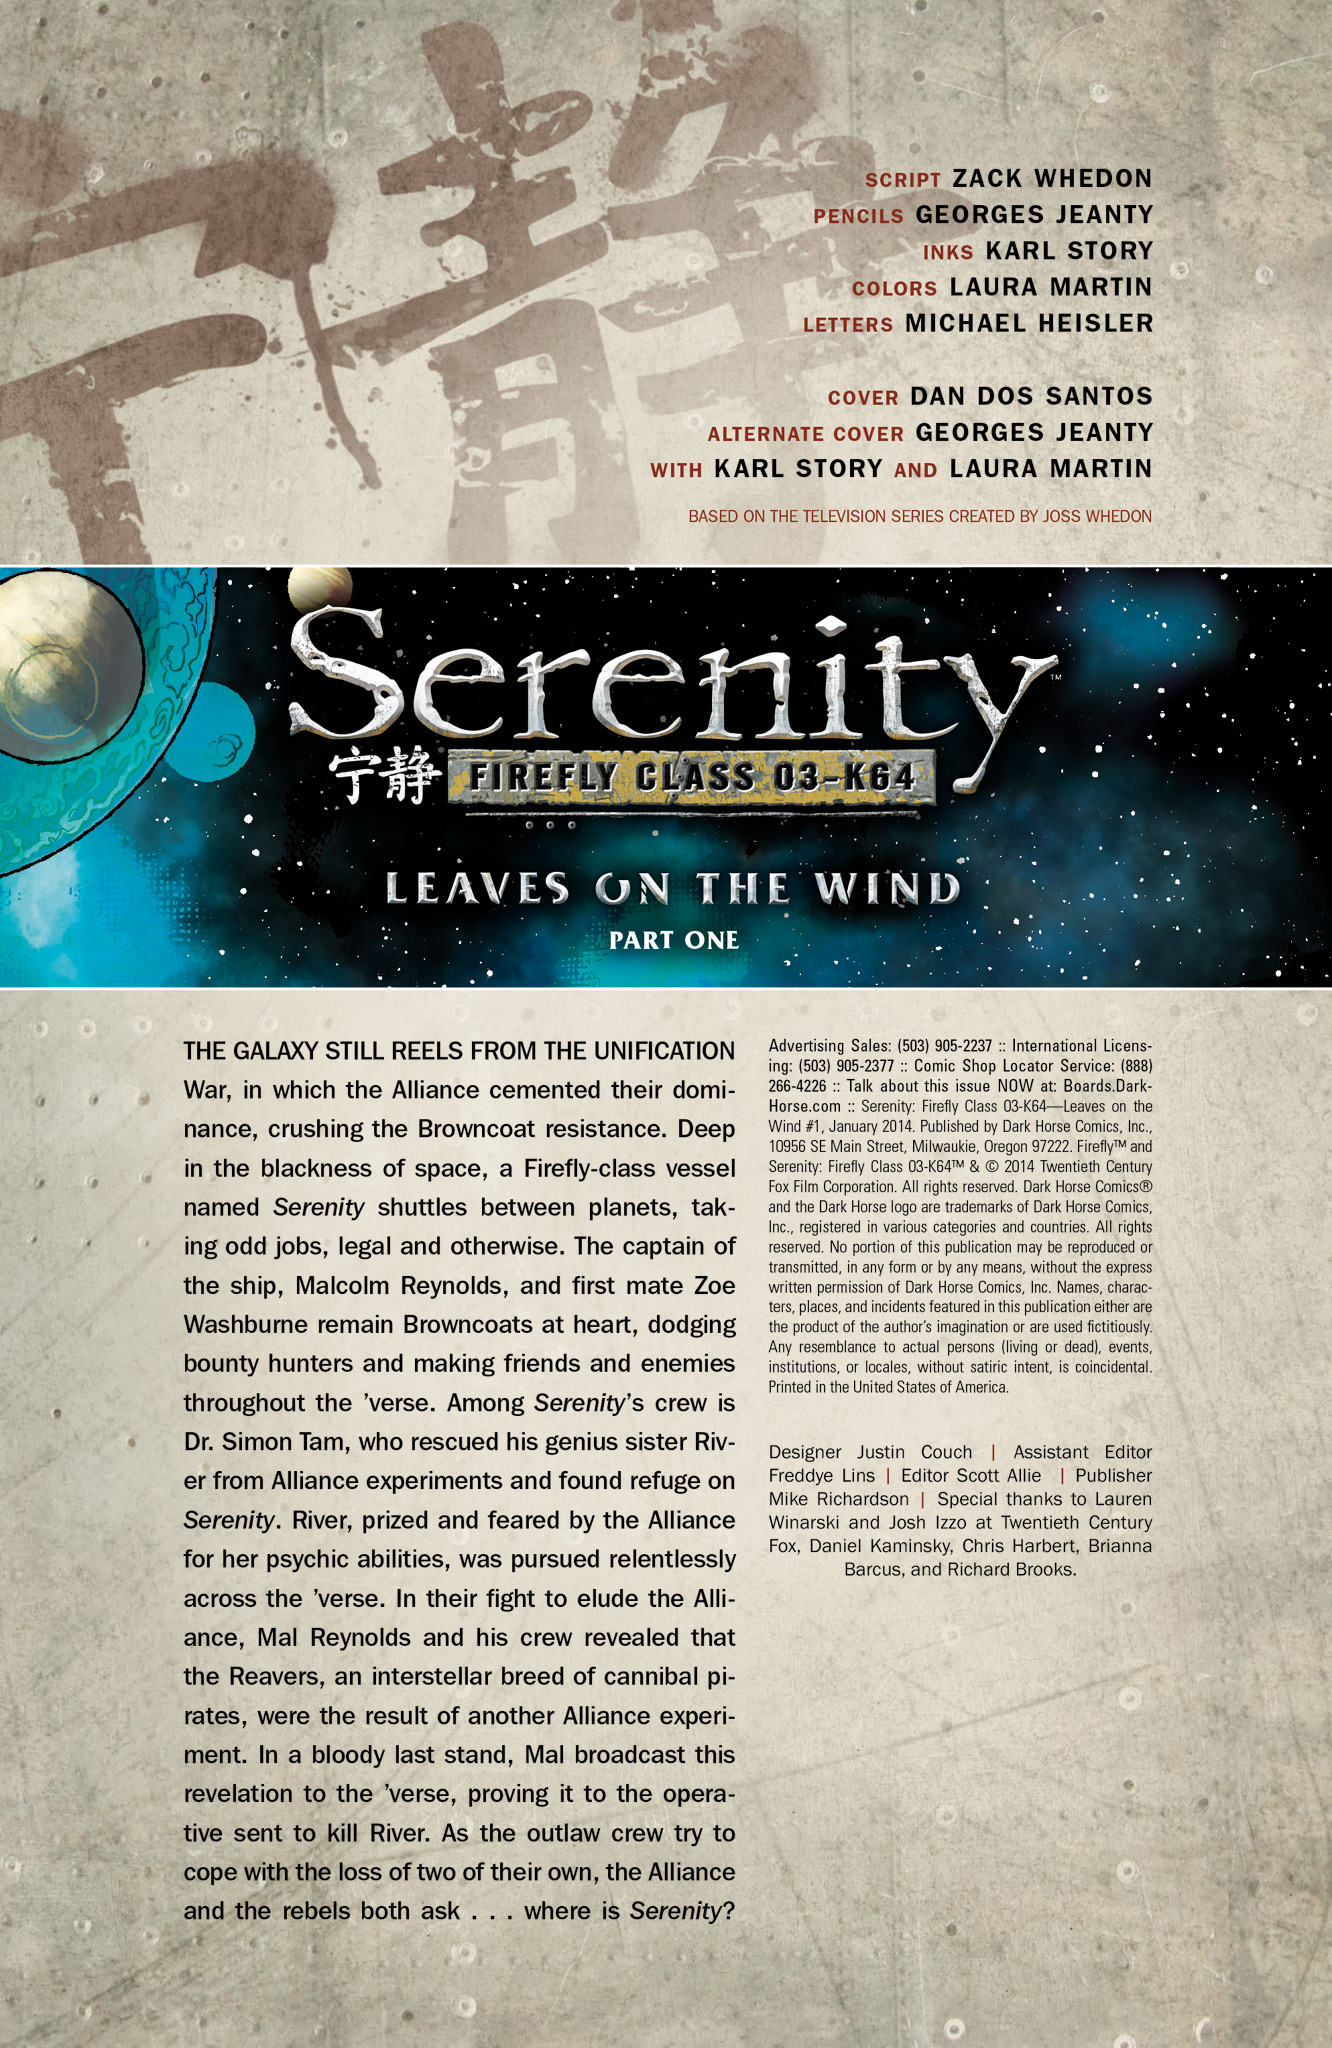 Read online Serenity: Firefly Class 03-K64  Leaves on the Wind comic -  Issue #1 - 2